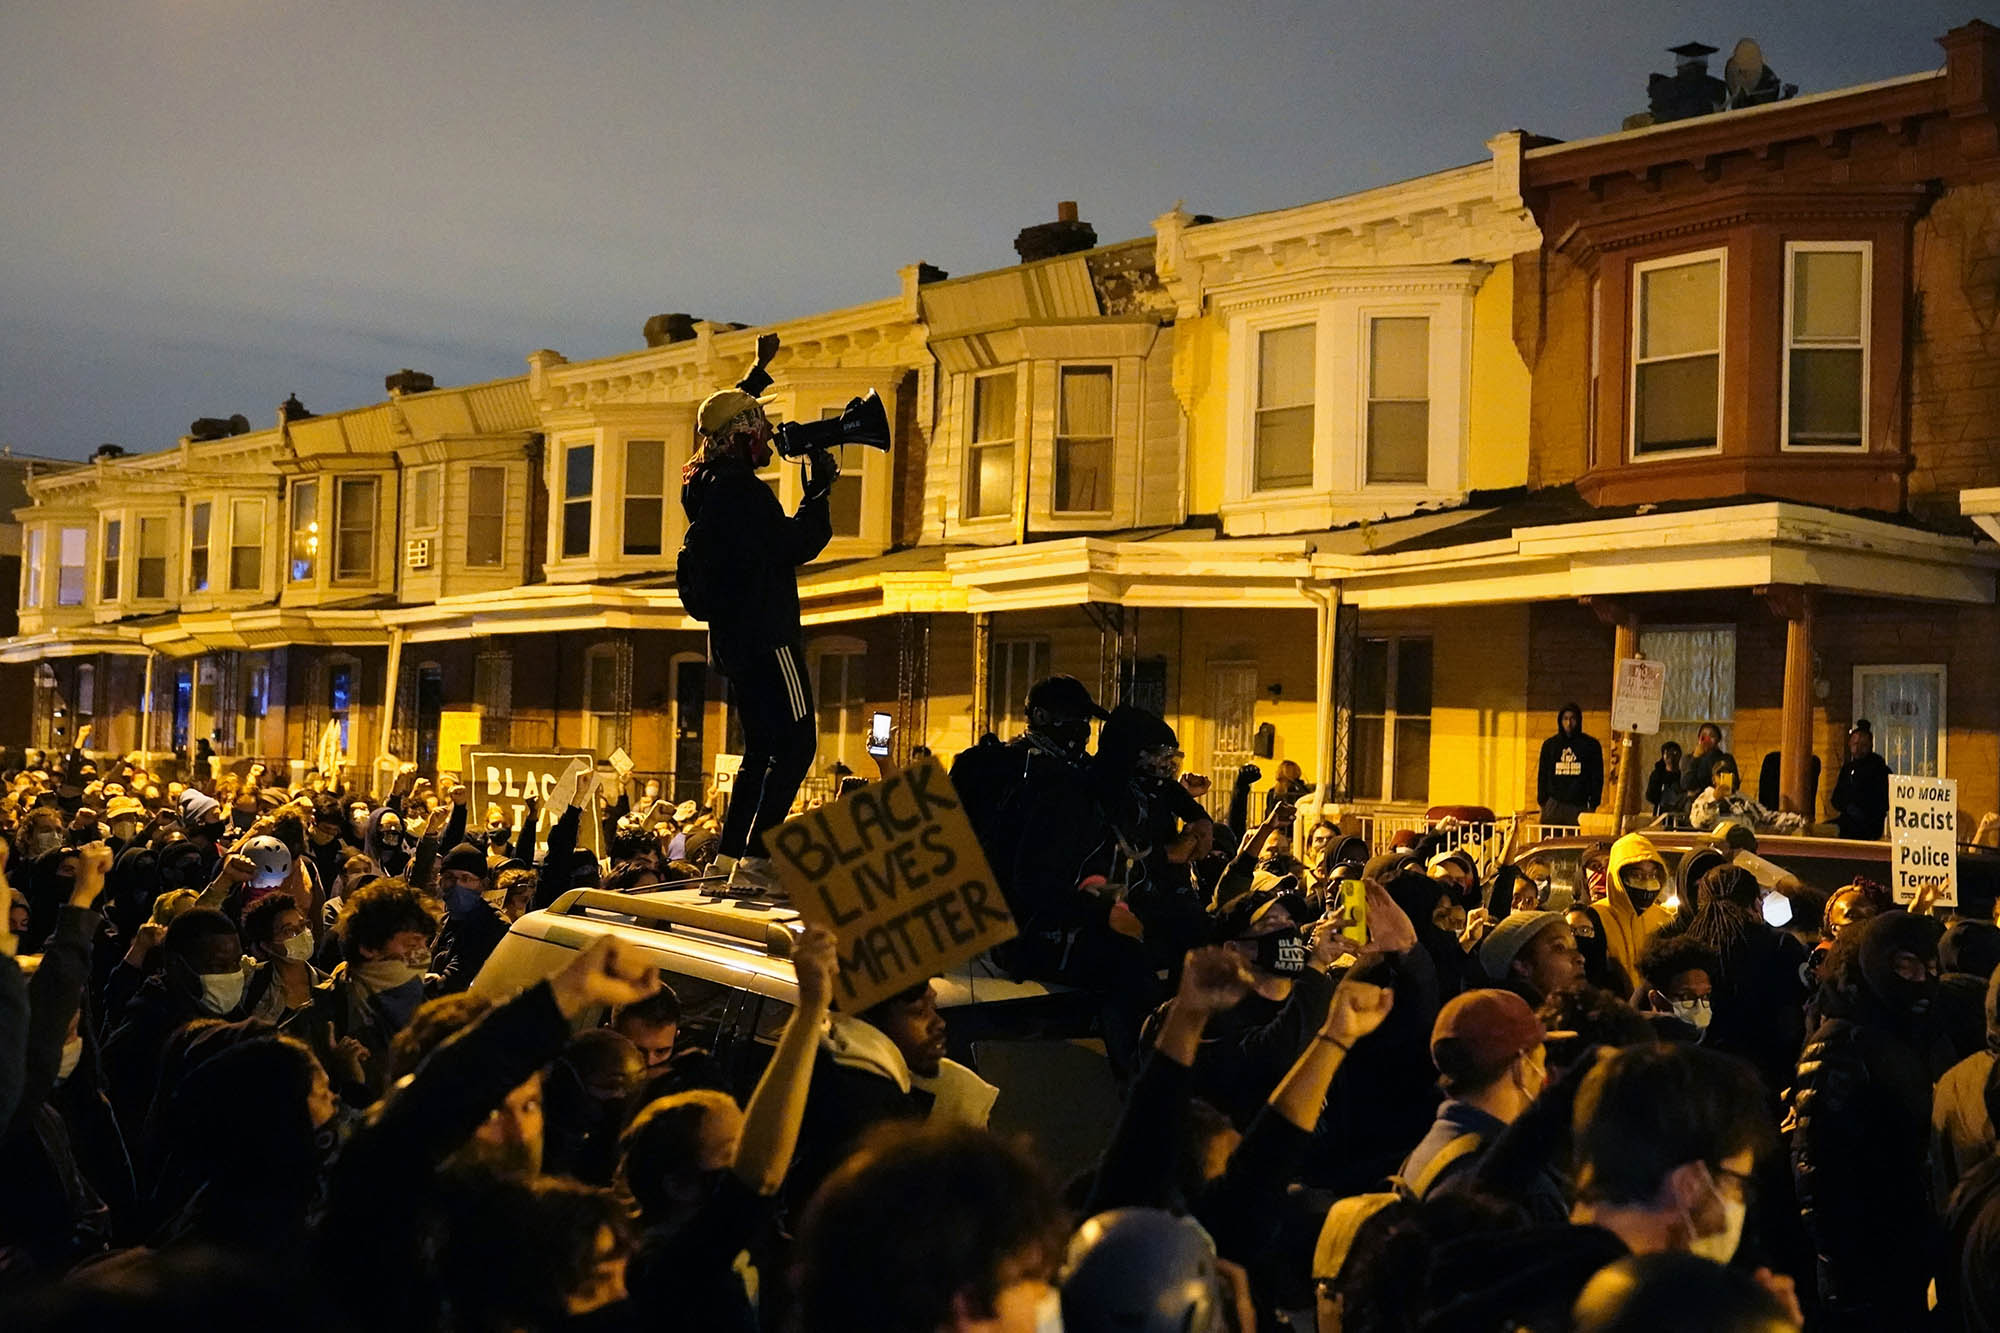 Philadelphia police ask residents to stay indoors as spurts of violence erupt during protests over the fatal police shooting of Walter Wallace Jr.